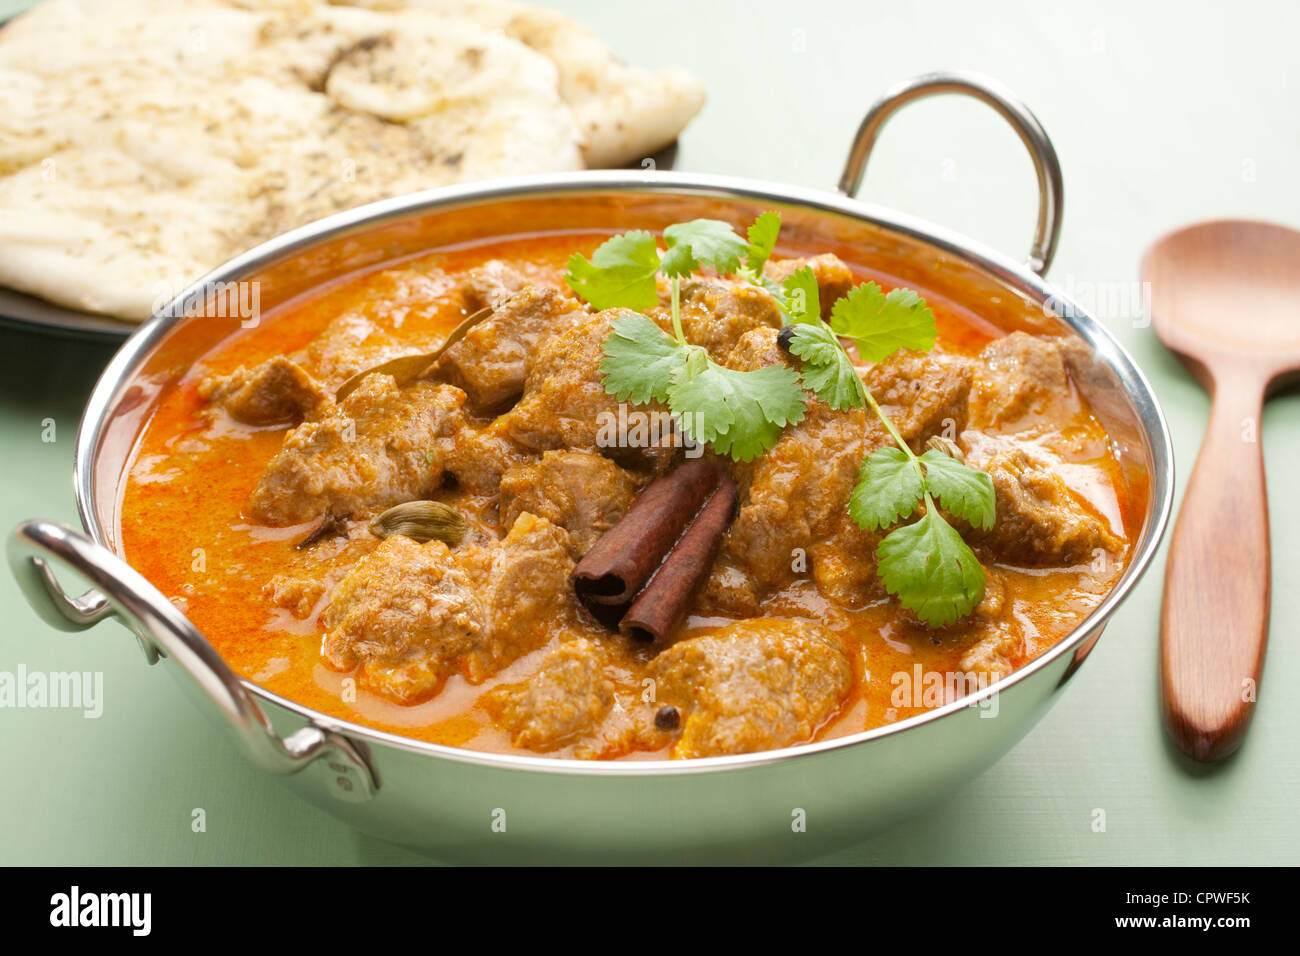 Indian curry lamb rogan josh in a steel karahi, with naan bread. - Stock Image